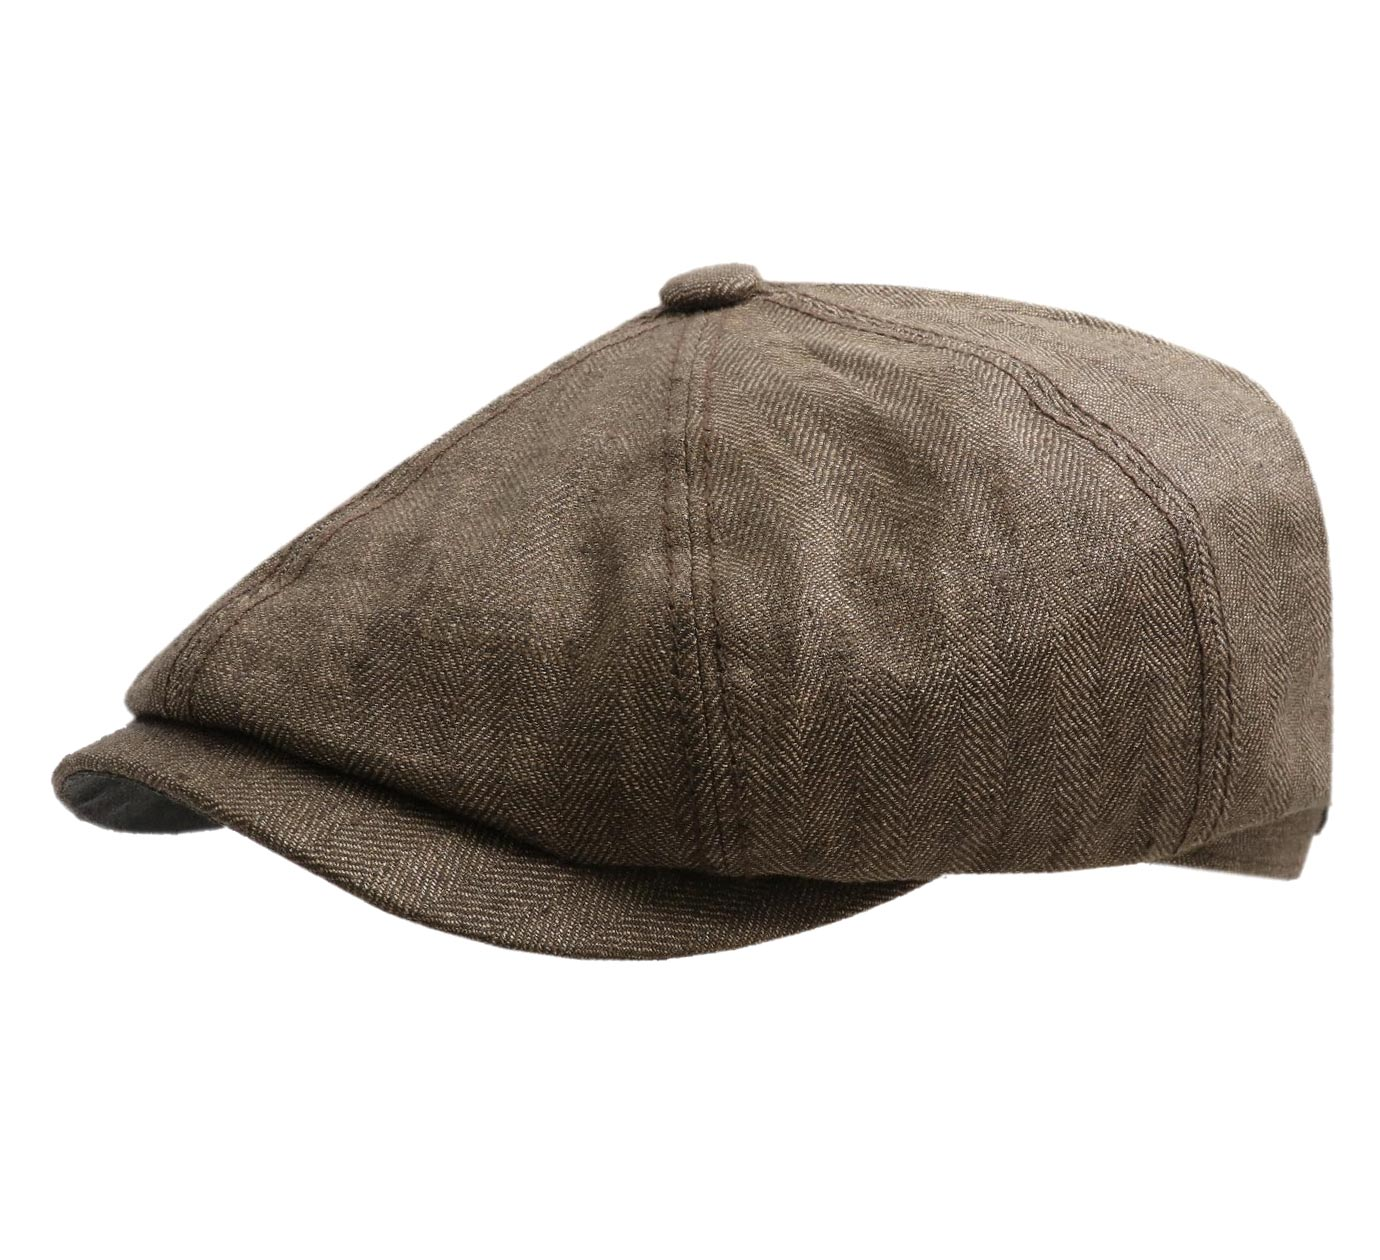 casquette gavroche simple